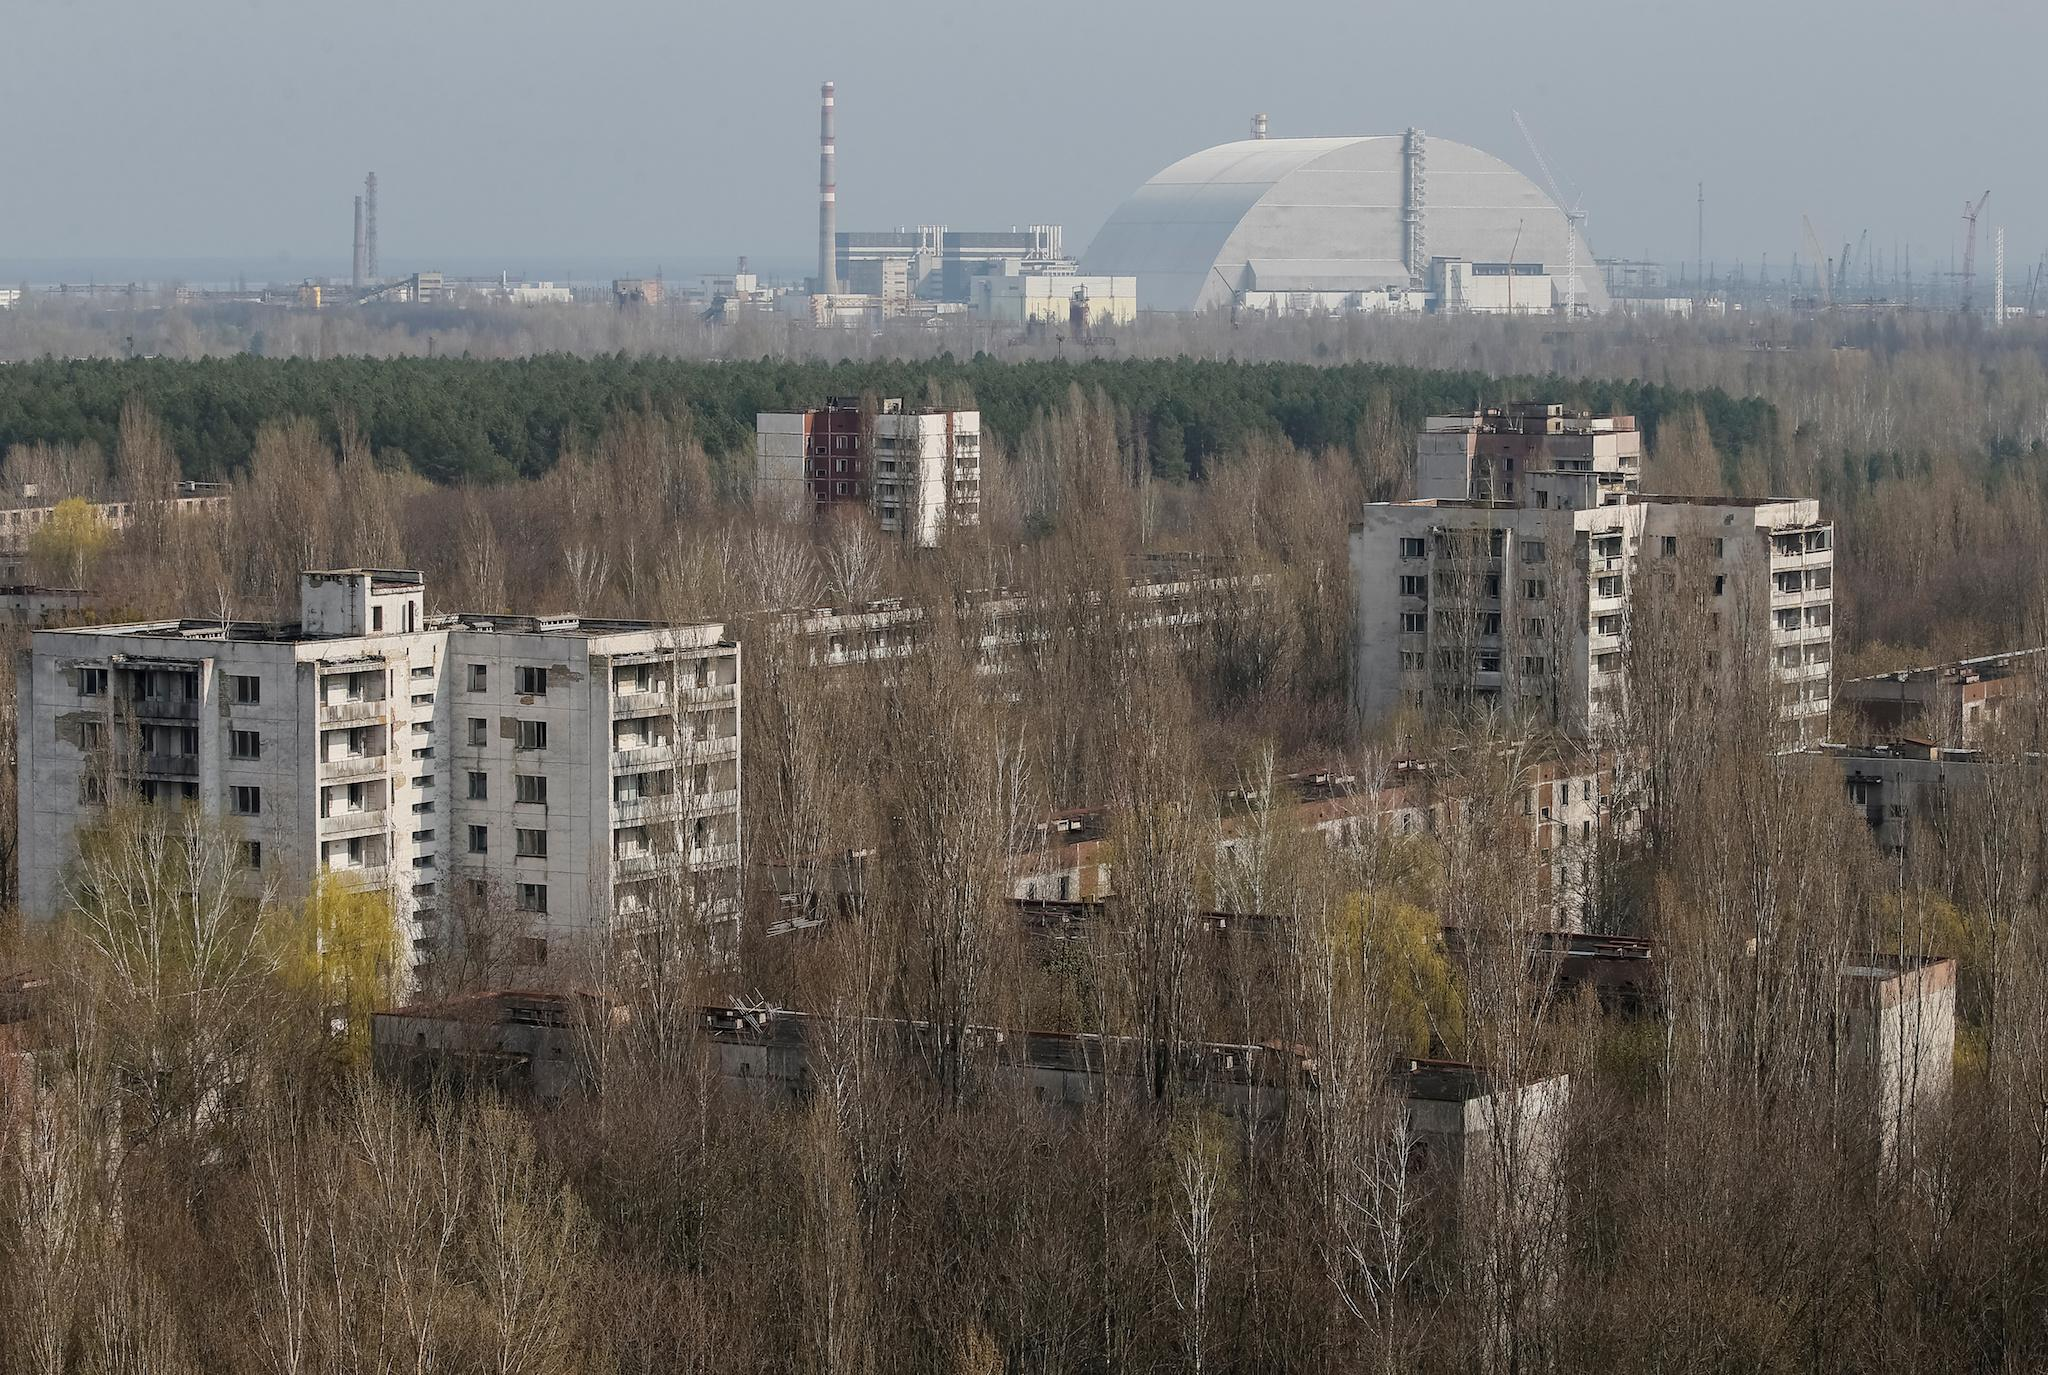 'Petya' Cyber Attack: Chernobyl's Radiation Monitoring System Hit by Worldwide Hack